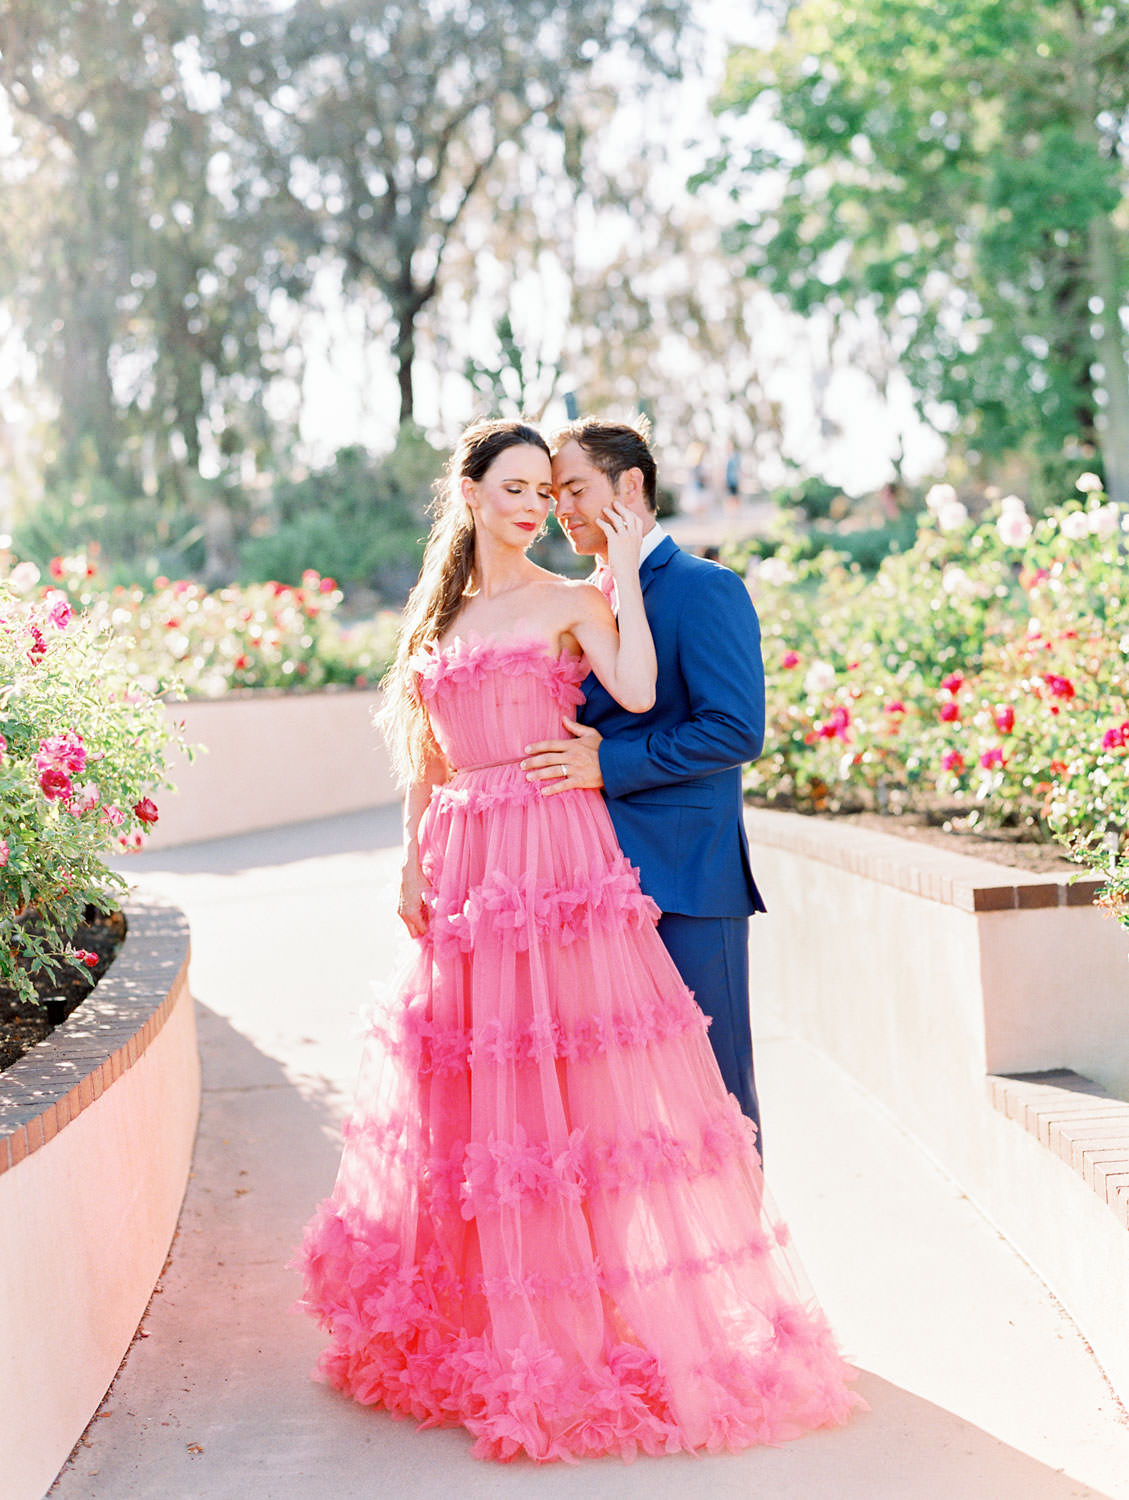 Bride in pink strapless Marchesa Notte gown in a rose garden. Groom in blue suit and pink tie to match his wife. Balboa Park San Diego Anniversary Photos by Cavin Elizabeth Photography